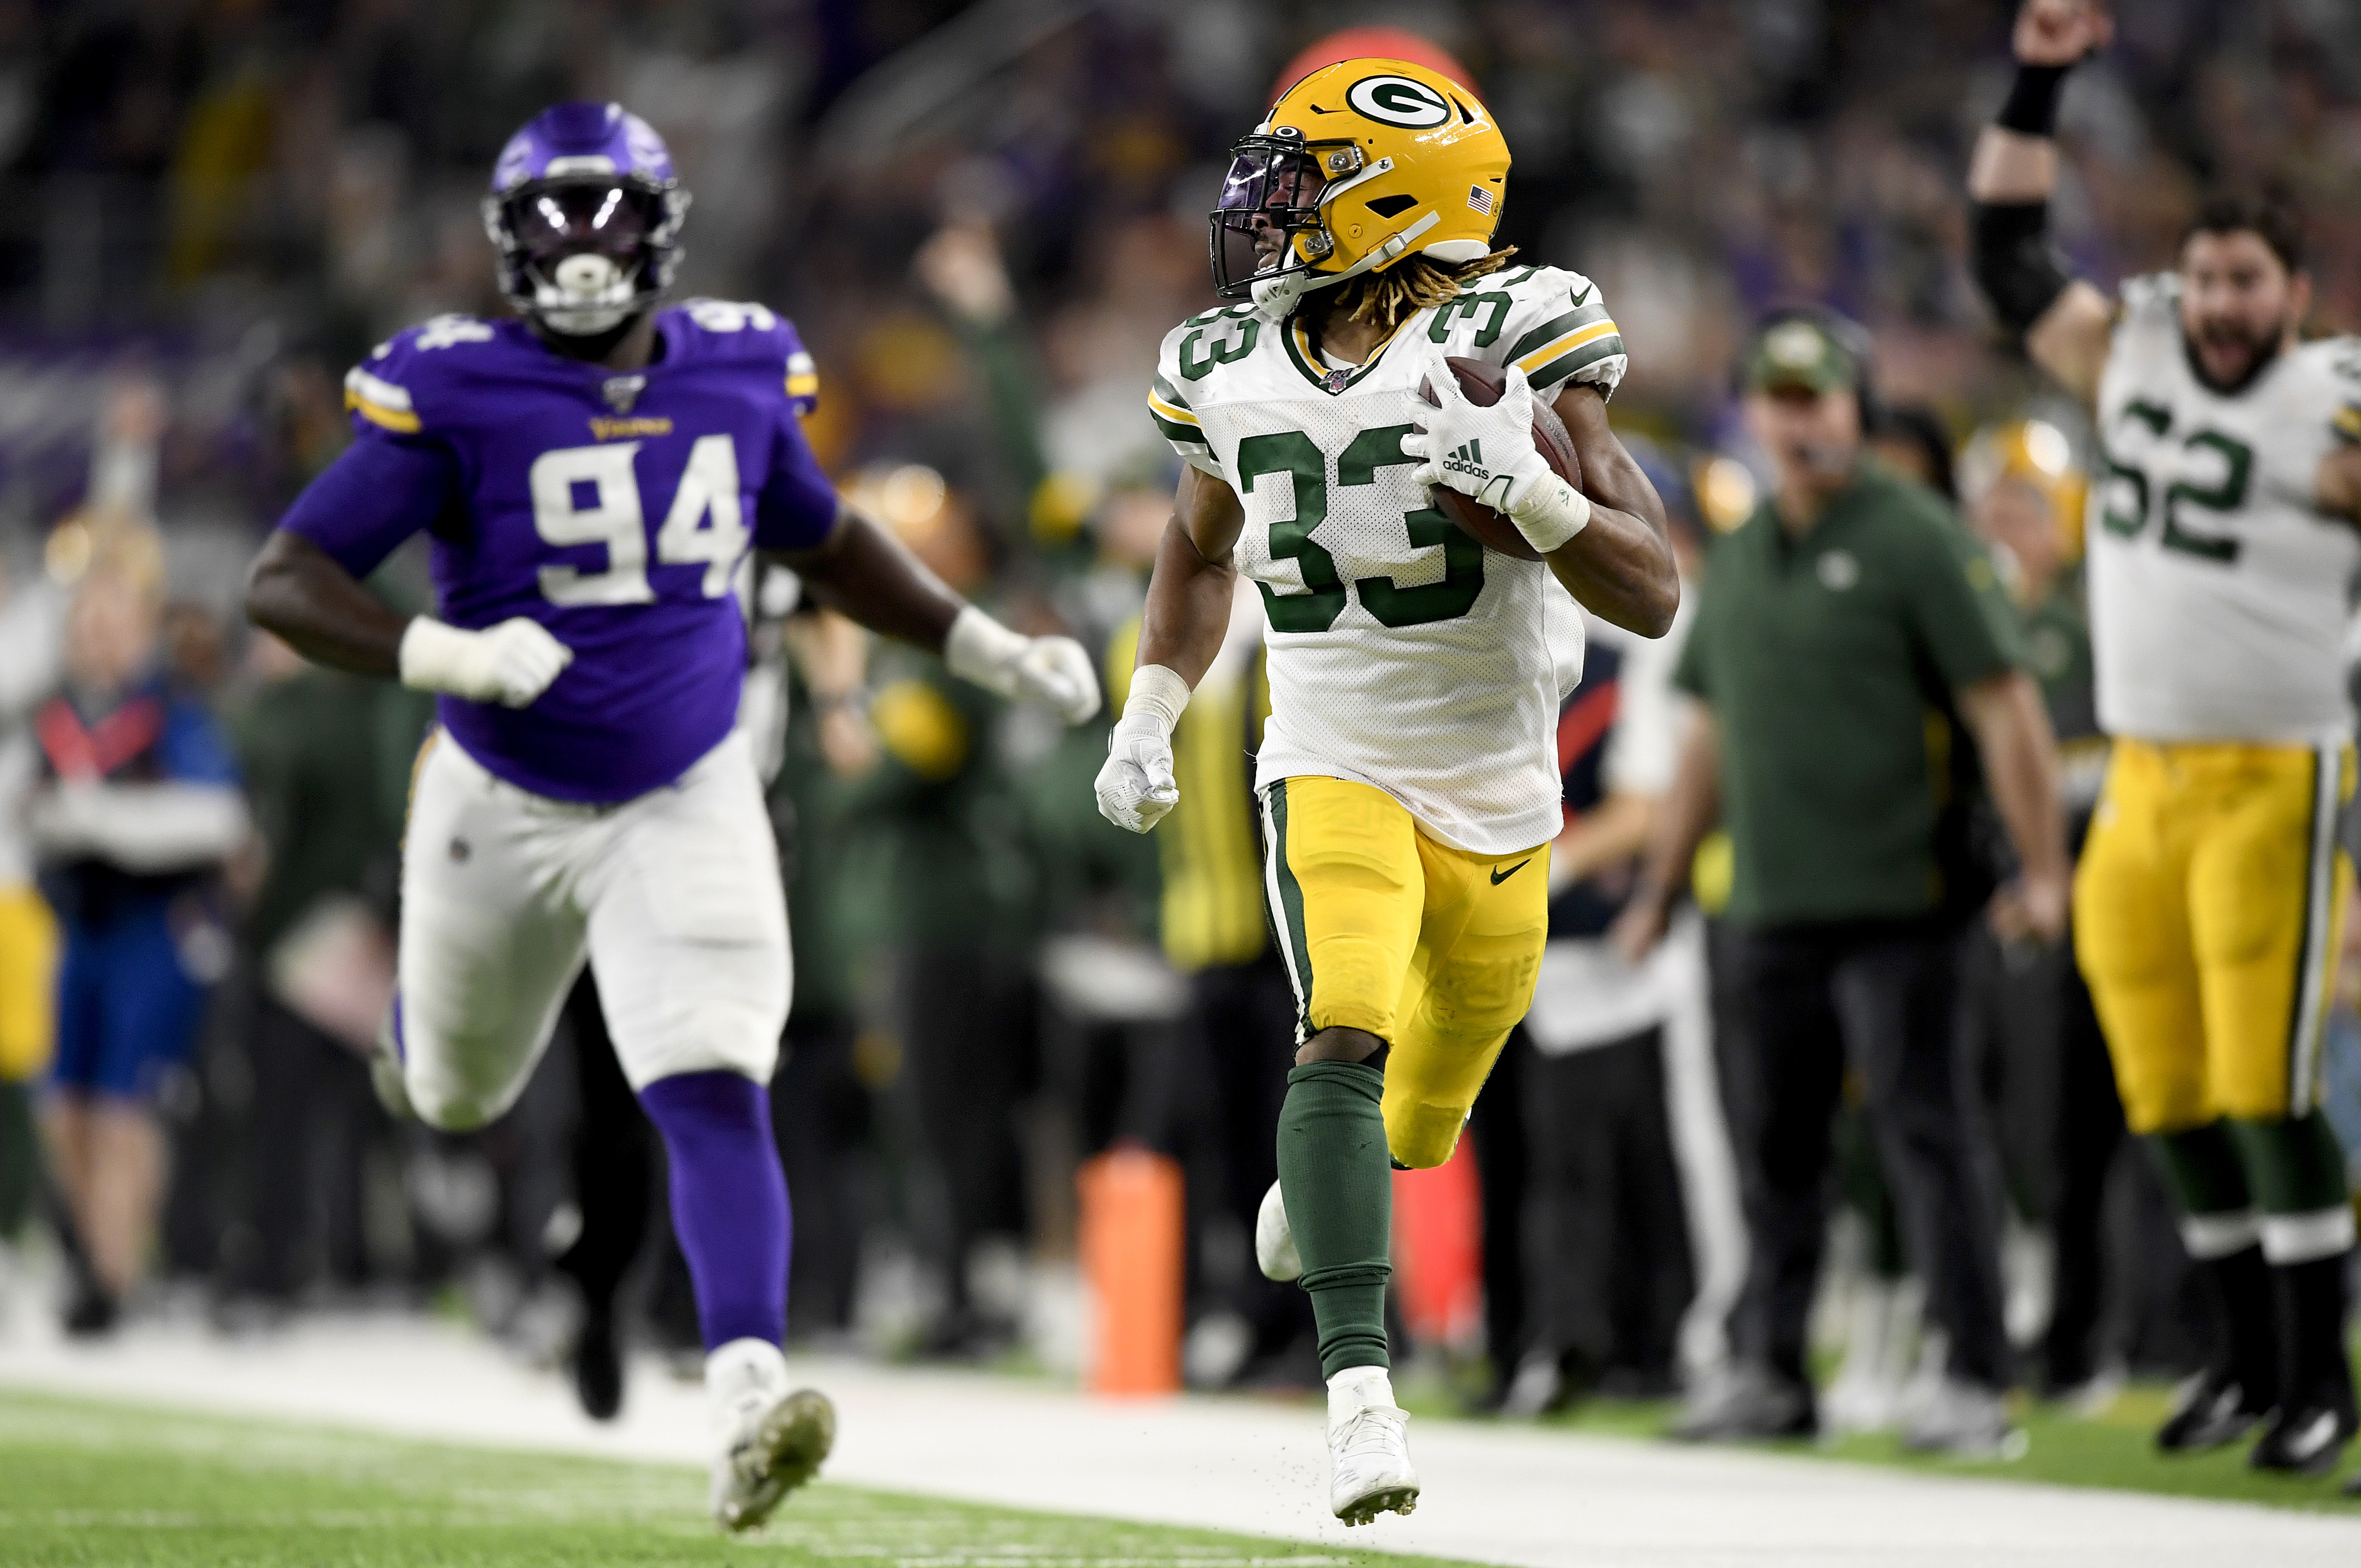 Packers Vikings Green Bay Clinches Nfc North Title As Kirk Cousins Struggles The Washington Post